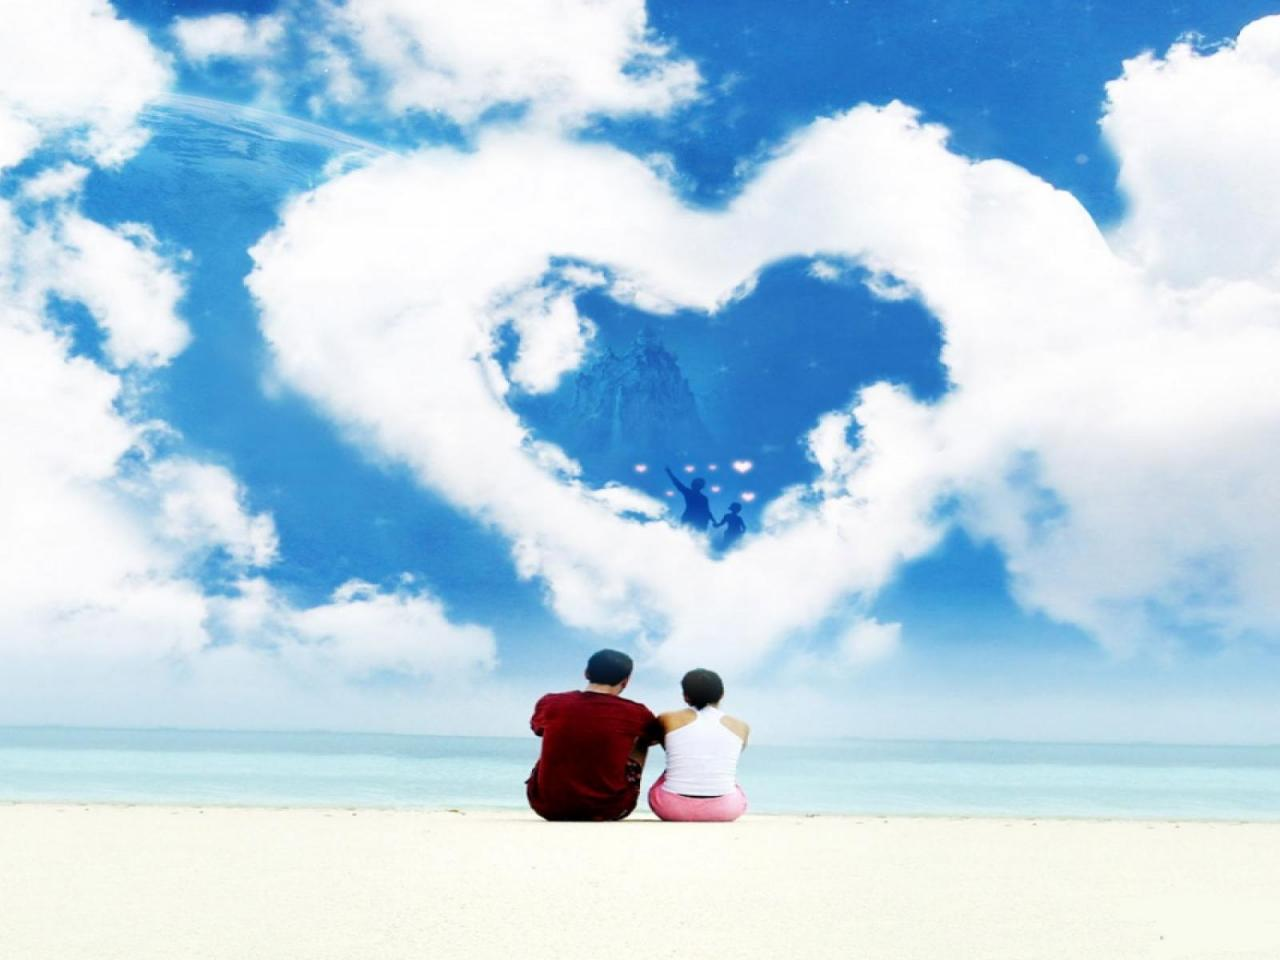 Animated Cute Wallpaper Download Heart Shaped Cloud 17 Of 57 Animated Romantic Love Cloud